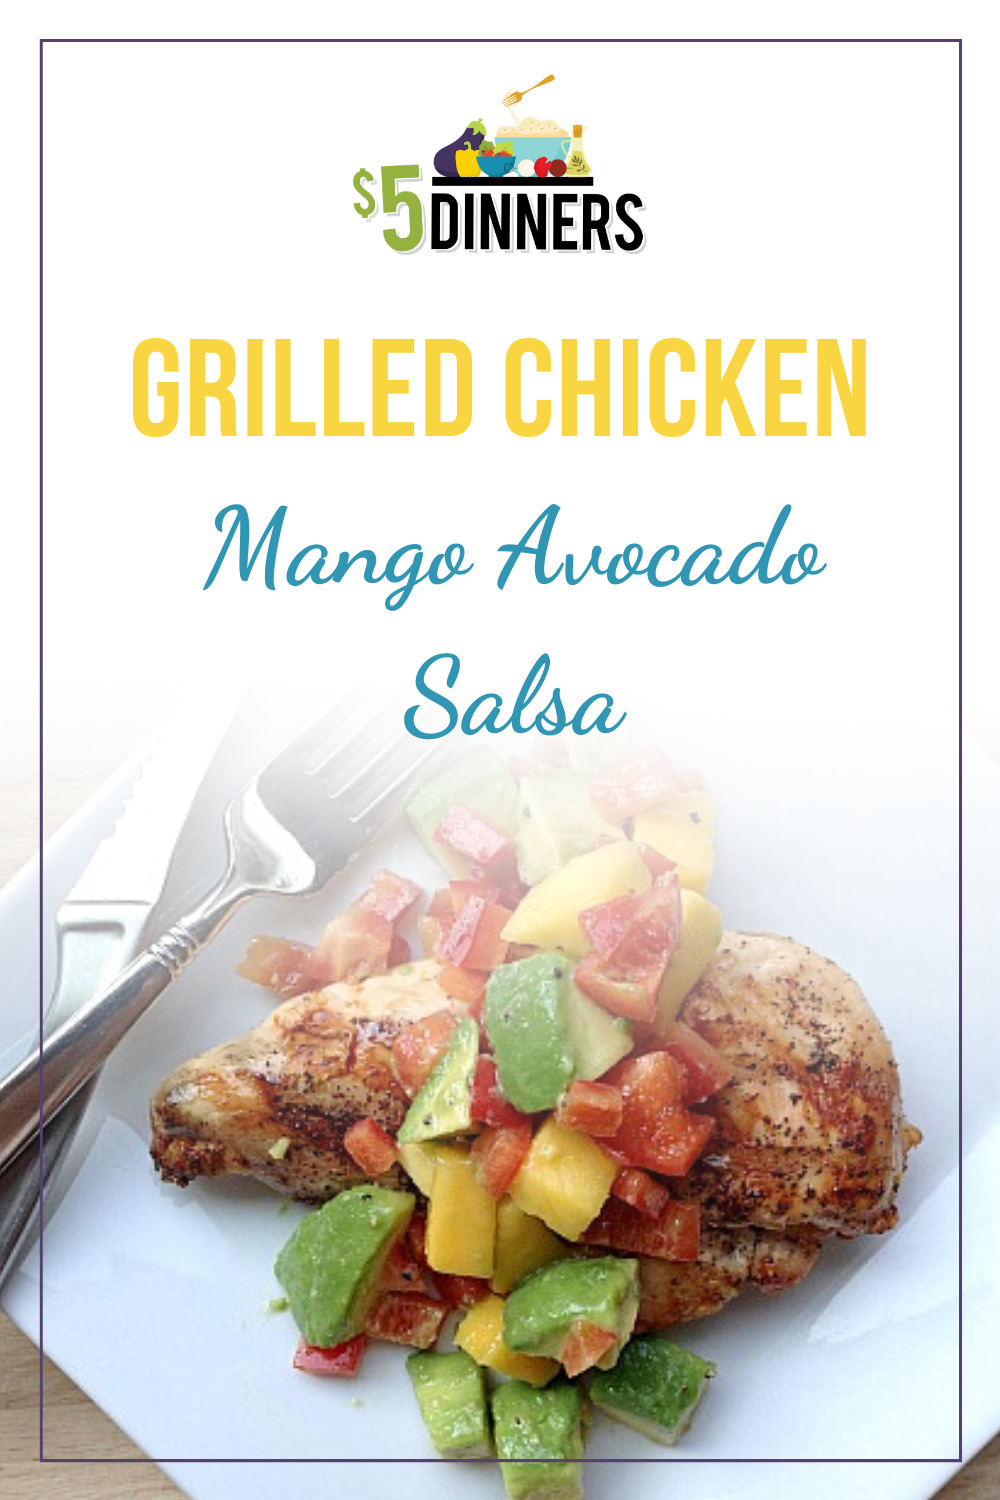 grilled chicken with mango & avocado salsa